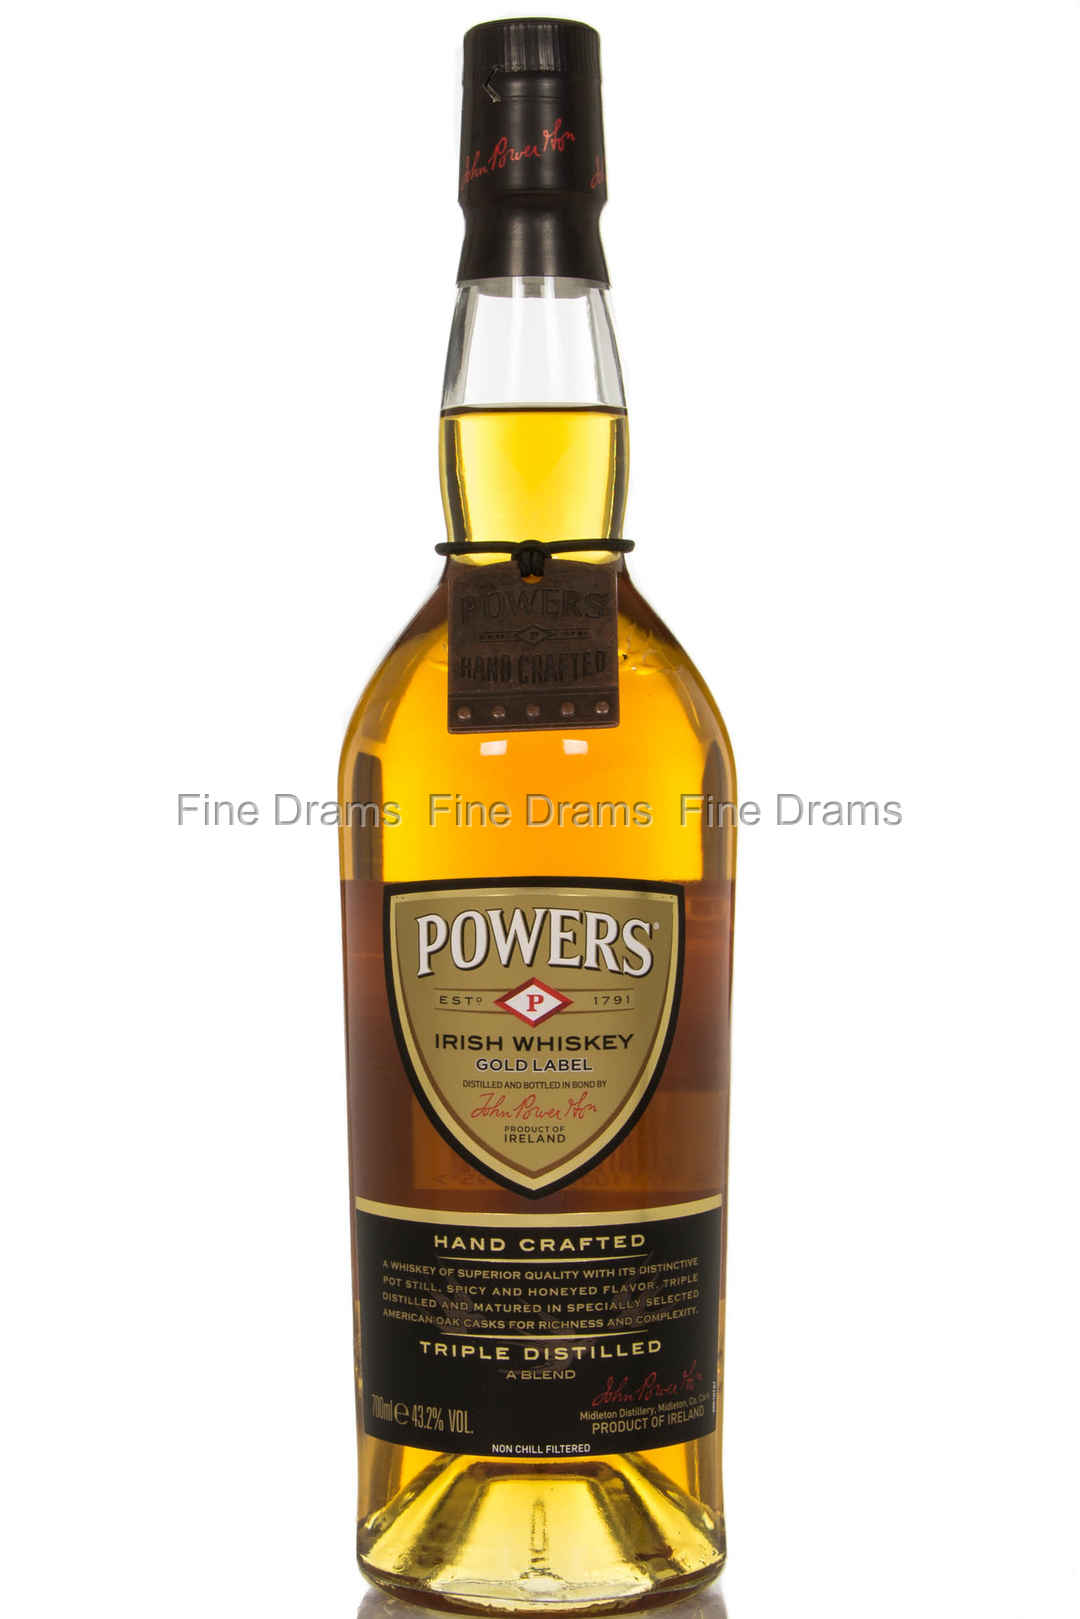 powers gold label irish blended whiskey